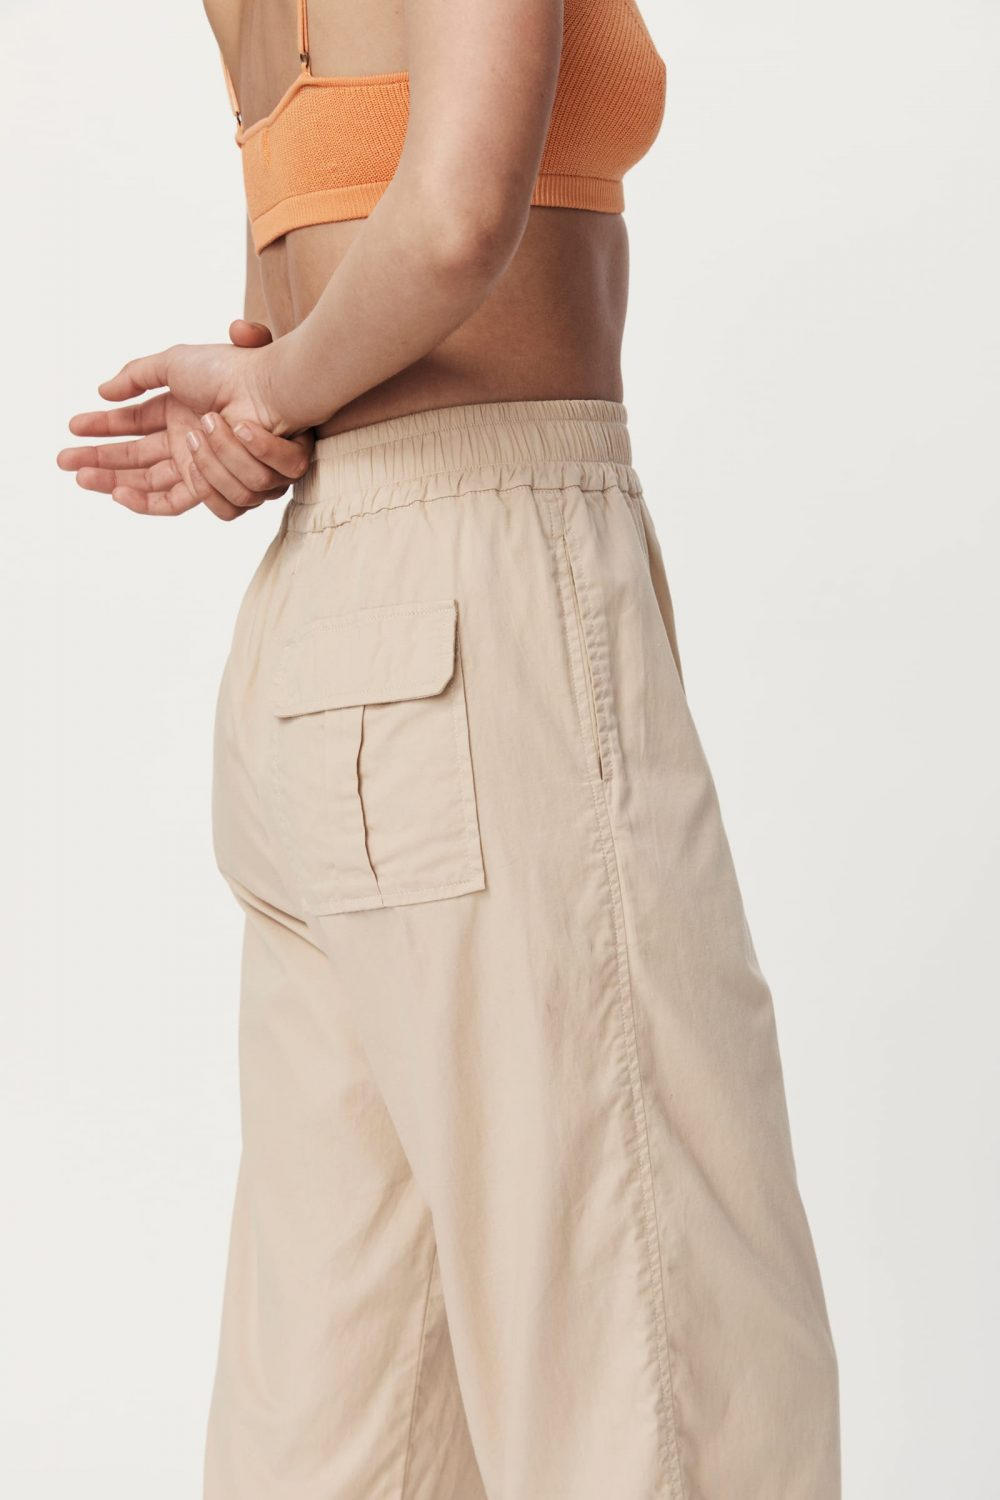 Rowie The Label Rs21 Popf Phillip Organic Pant Fawn Spring21 0151